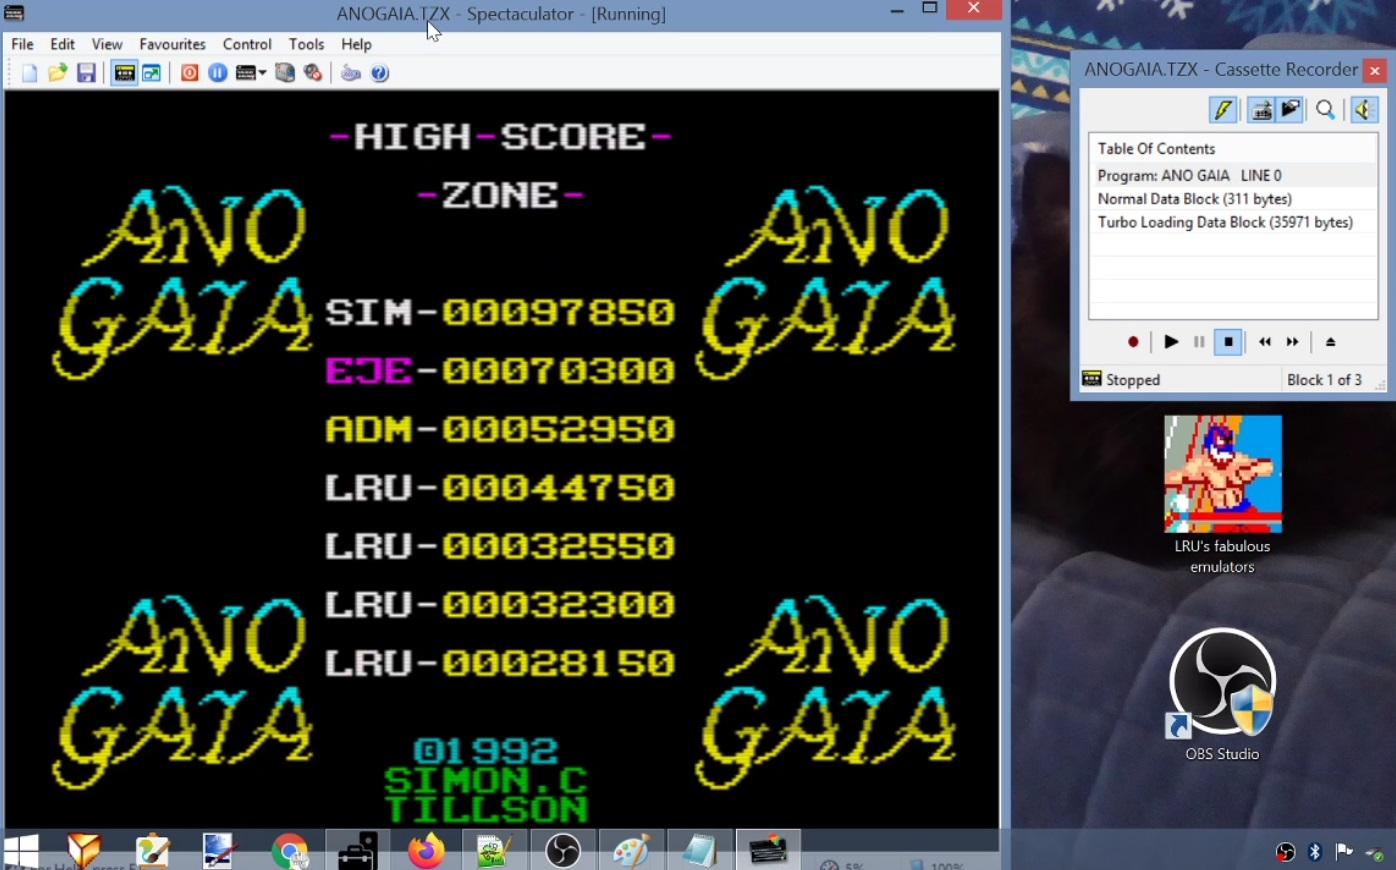 LuigiRuffolo: Ano Gaia (ZX Spectrum Emulated) 44,750 points on 2021-01-18 12:09:42